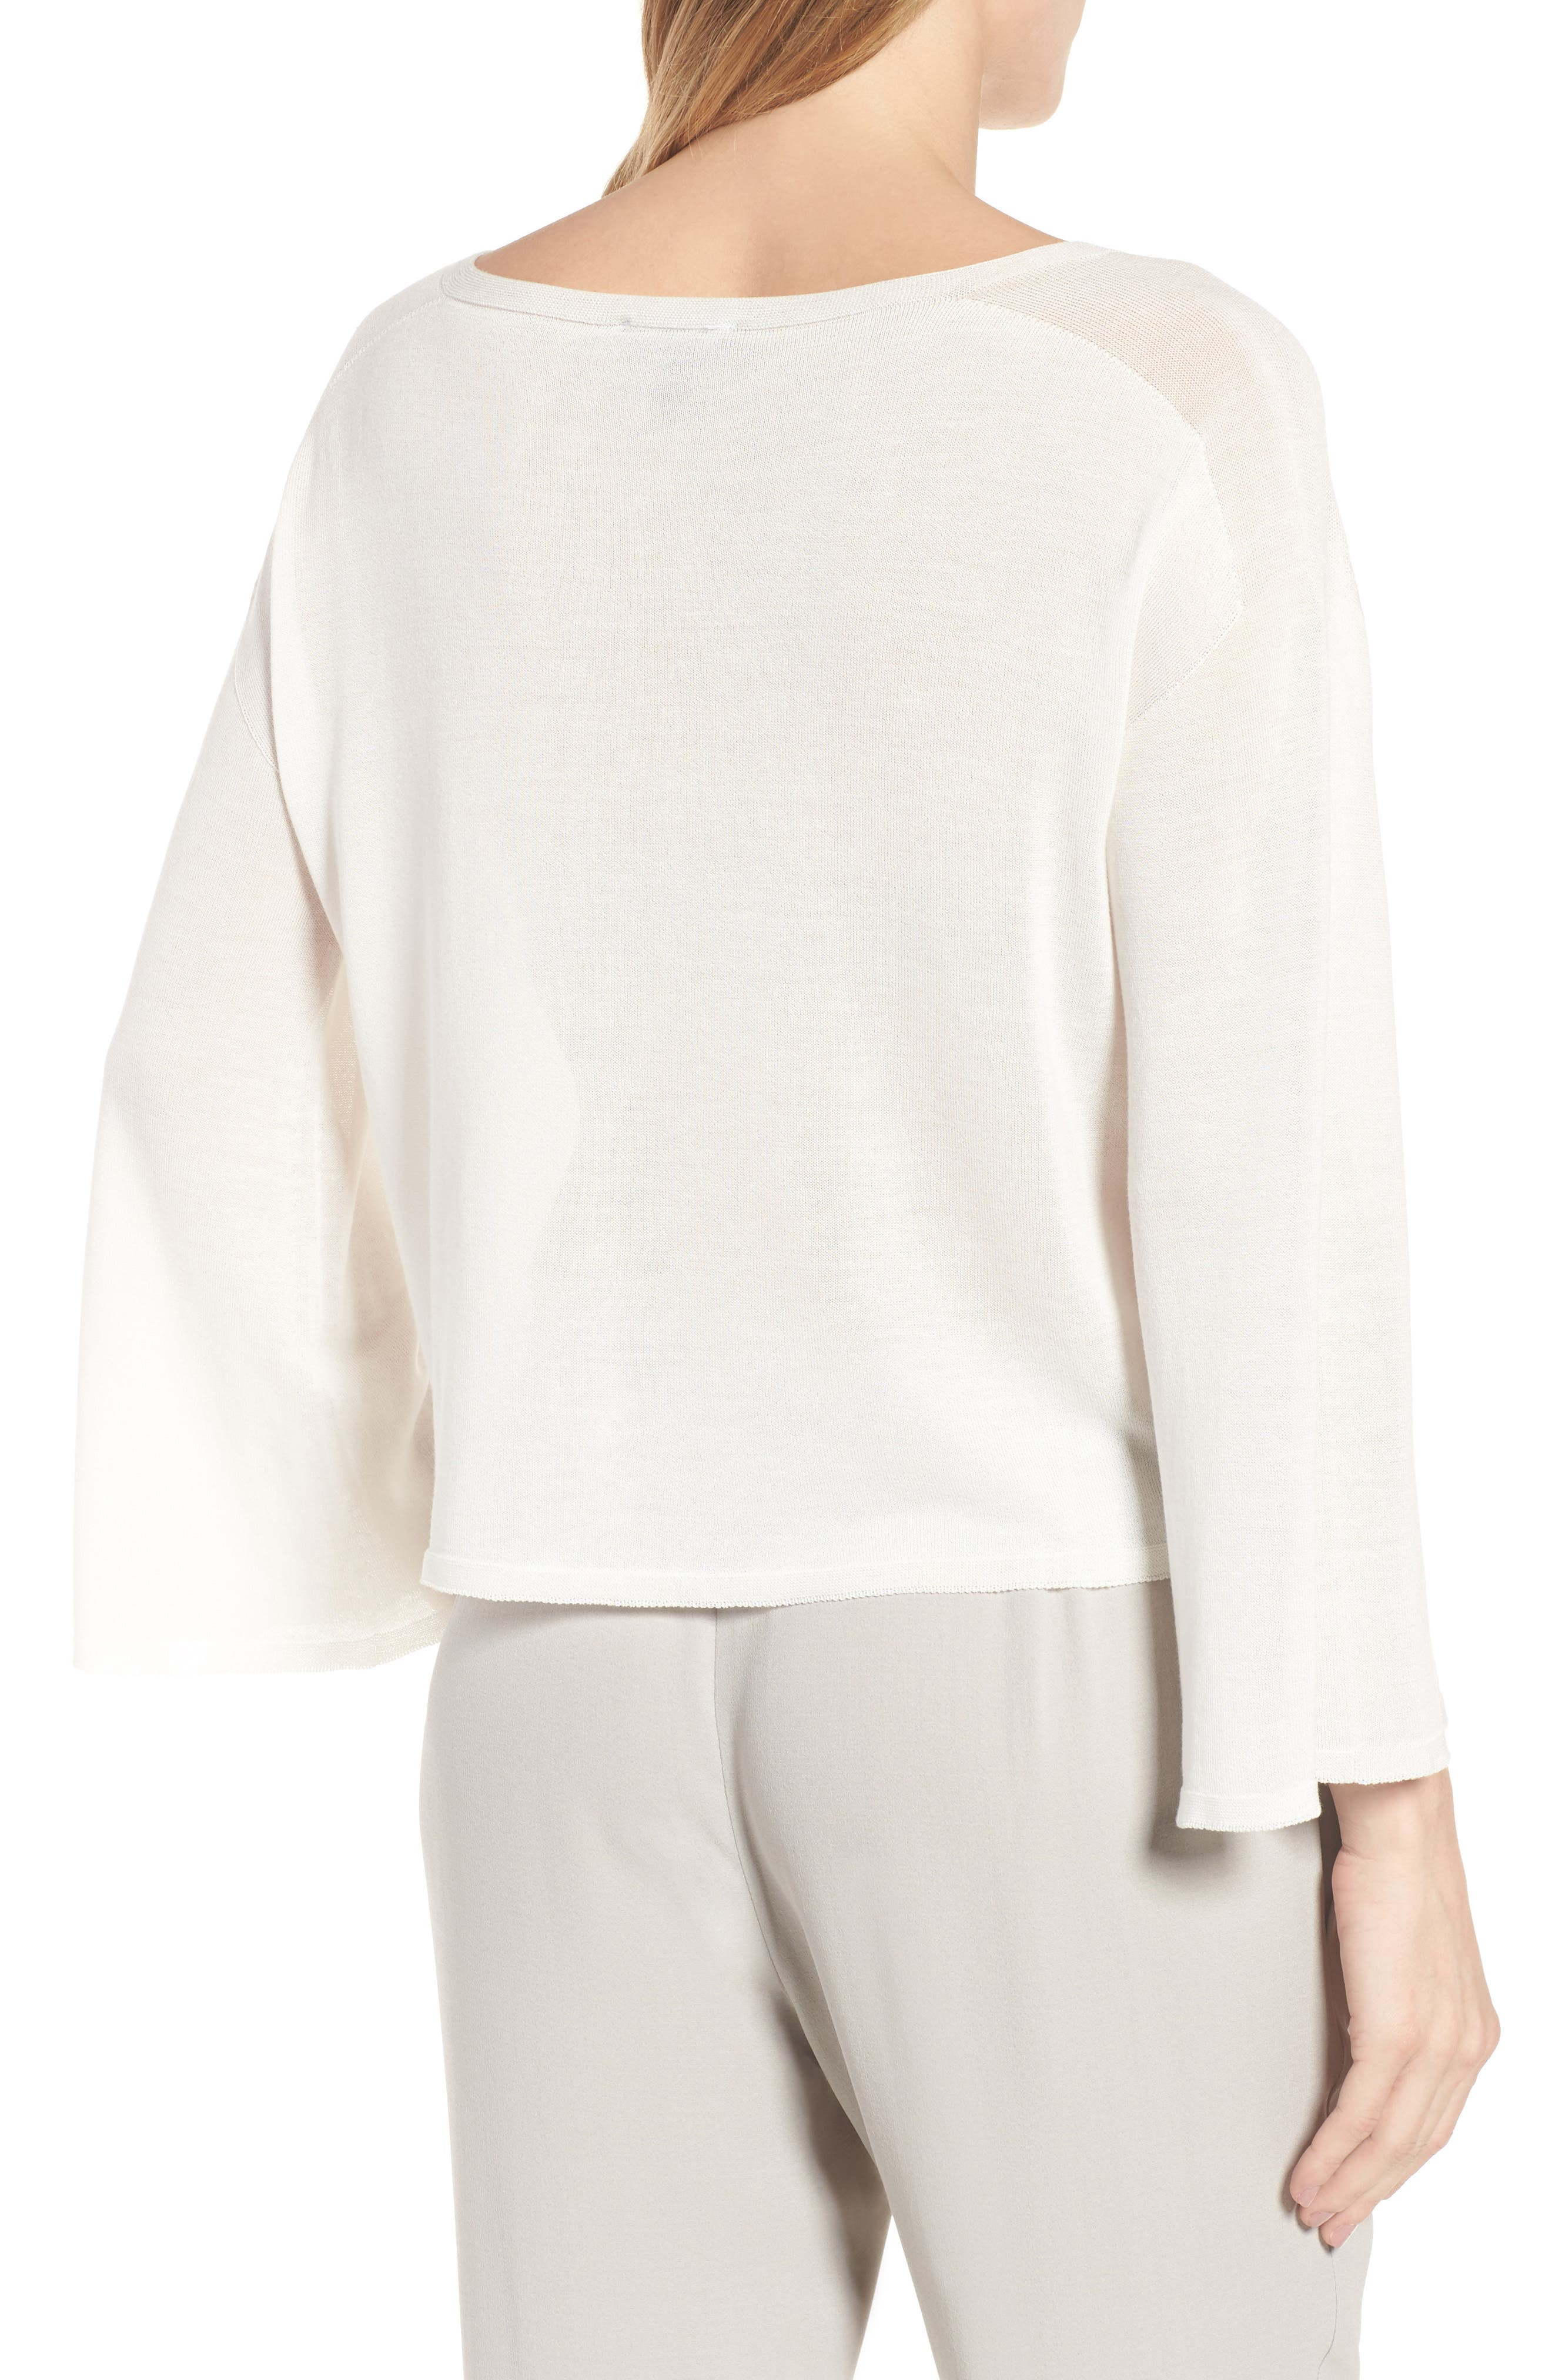 Tencel<sup>®</sup> Lyocell Knit Sweater,                             Alternate thumbnail 5, color,